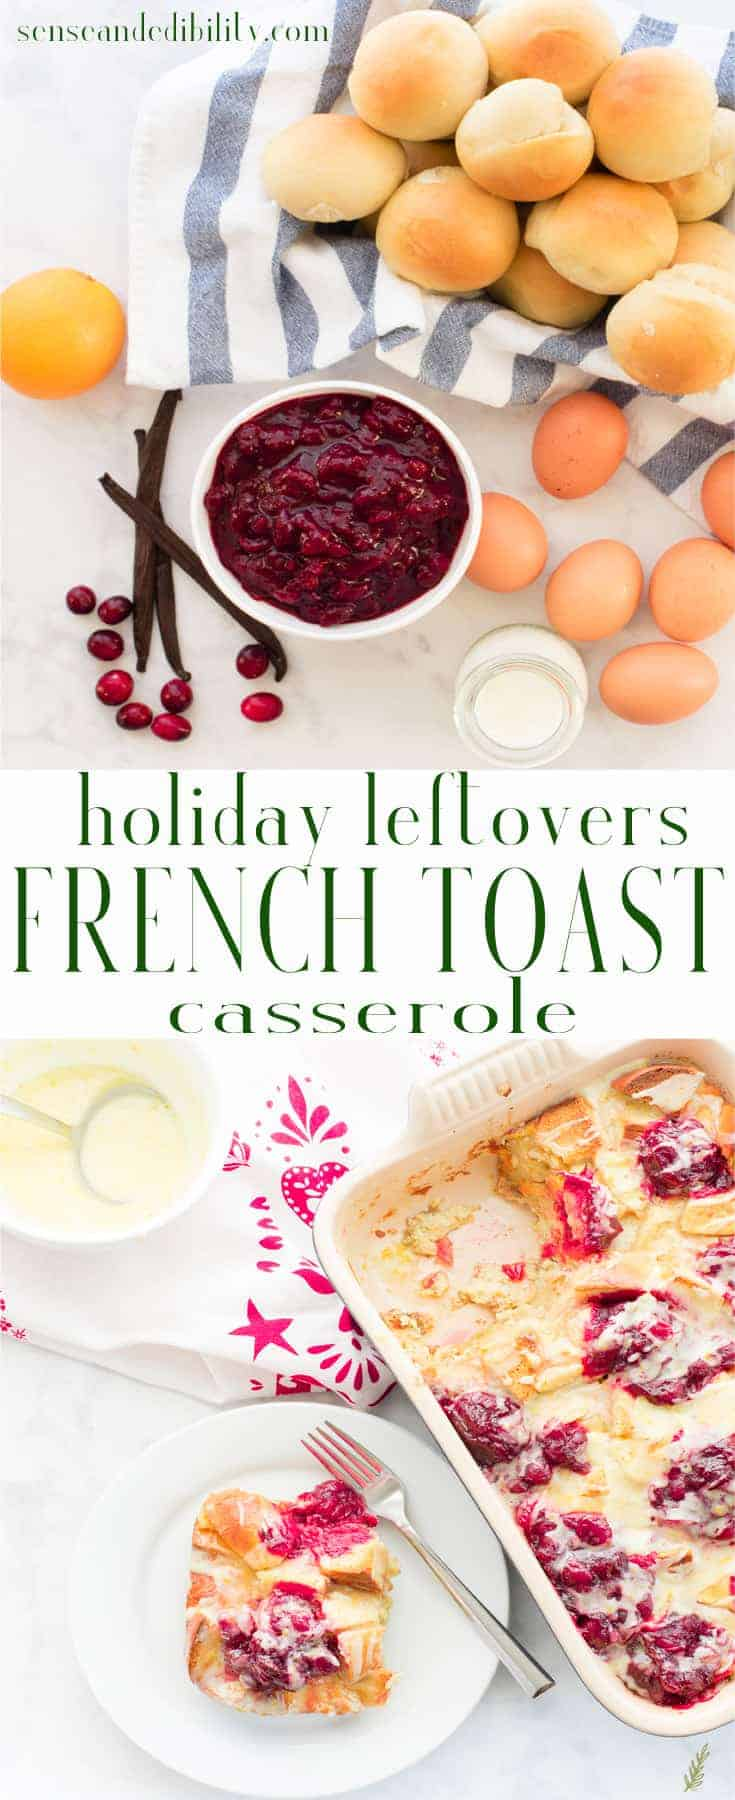 Sense & Edibility's Holiday Leftover French Toast Casserole Pin